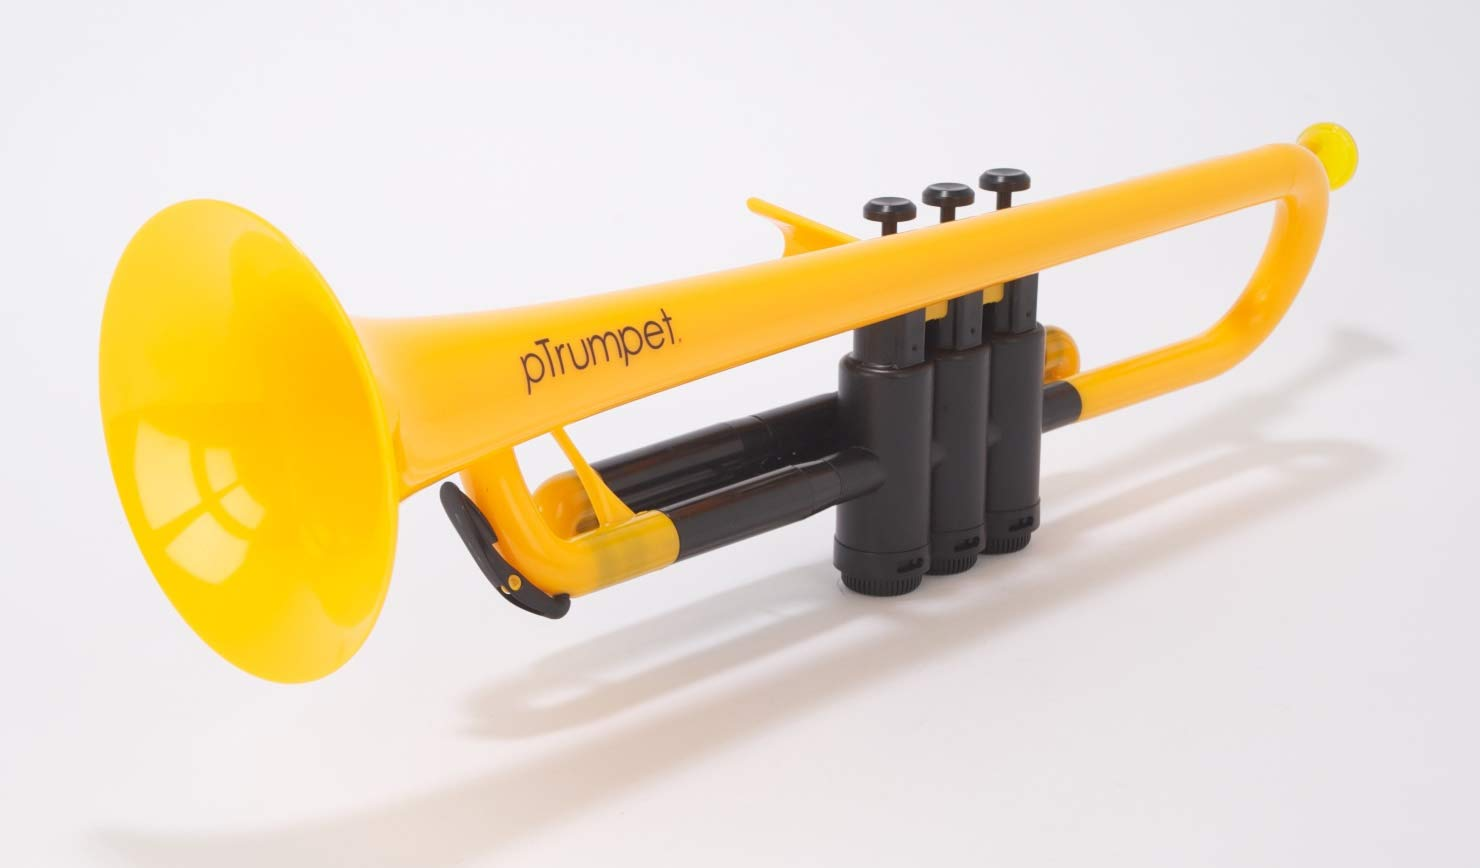 pBone Jiggs pTrumpet Plastic Trumpet w/Gig Bag and 3C and 5C Mouthpieces, Yellow, PTRUMPET1Y) by pBone (Image #2)